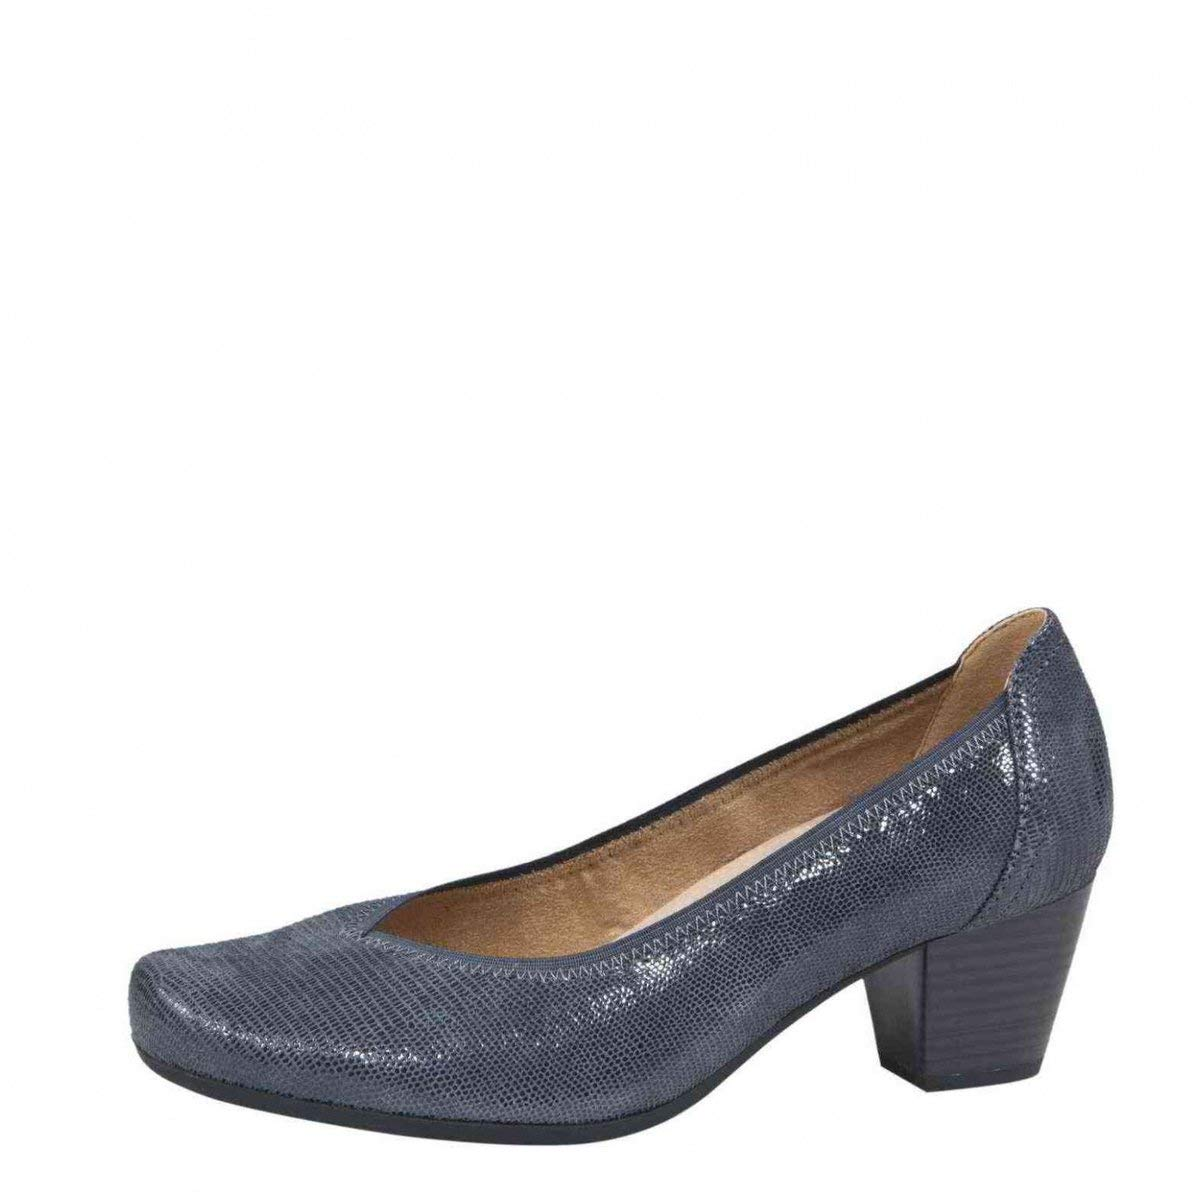 CAPRICE Damen Pumps 9-9-22300-29 806 blau 311222